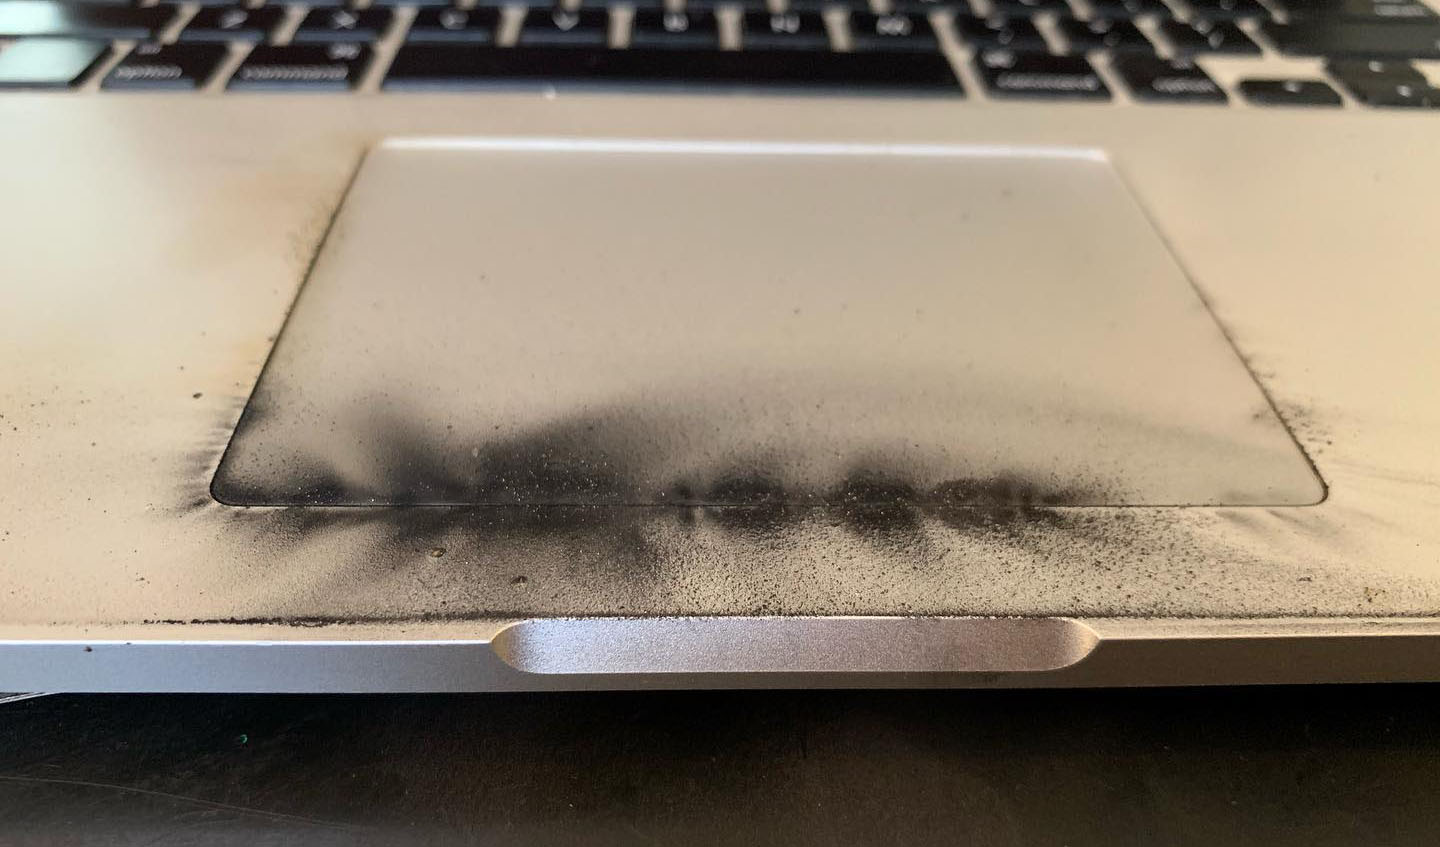 MacBook Survives, Disables All USB Ports to Prevent Damage After USB-C Cable 'Started to Smoke'